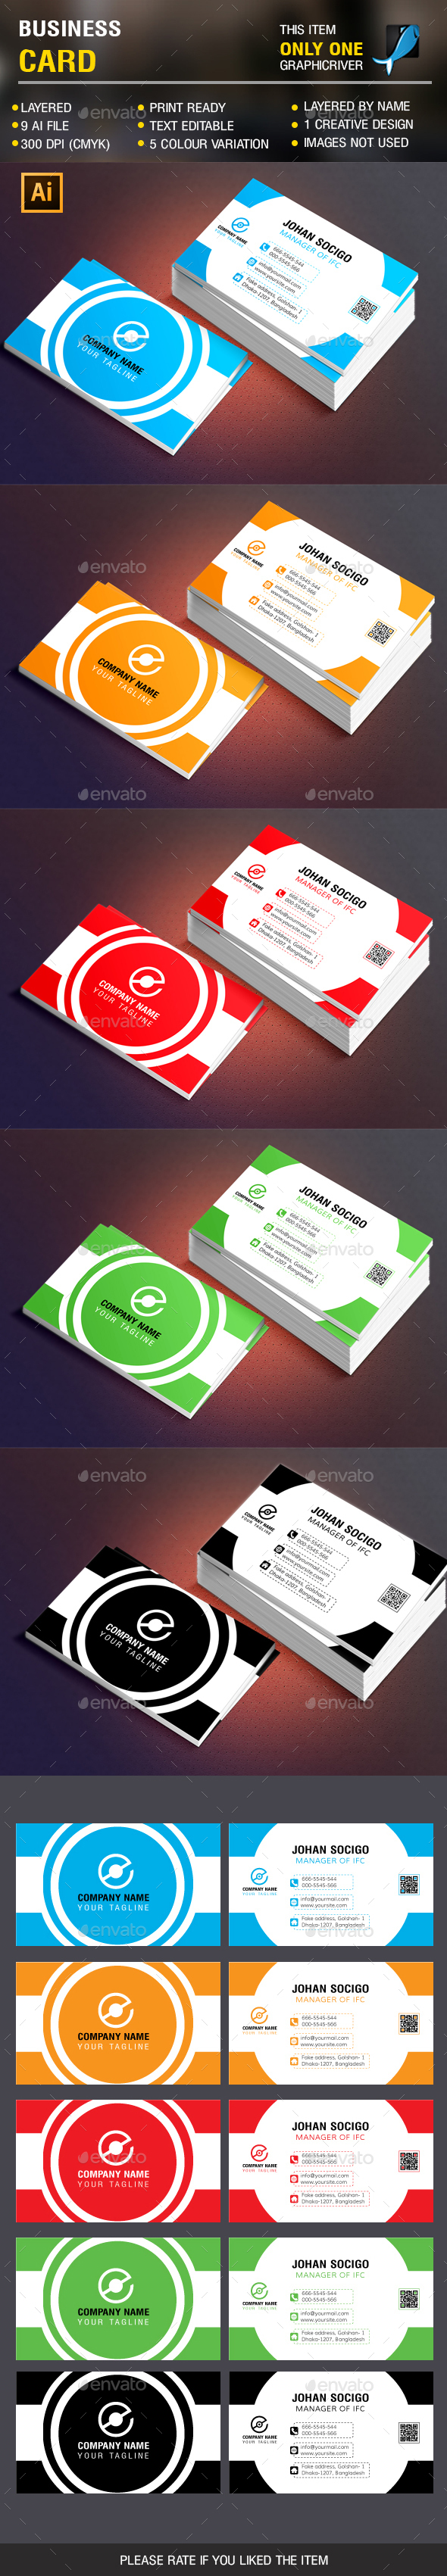 Clean Busienss Card Vol 3 - Corporate Business Cards